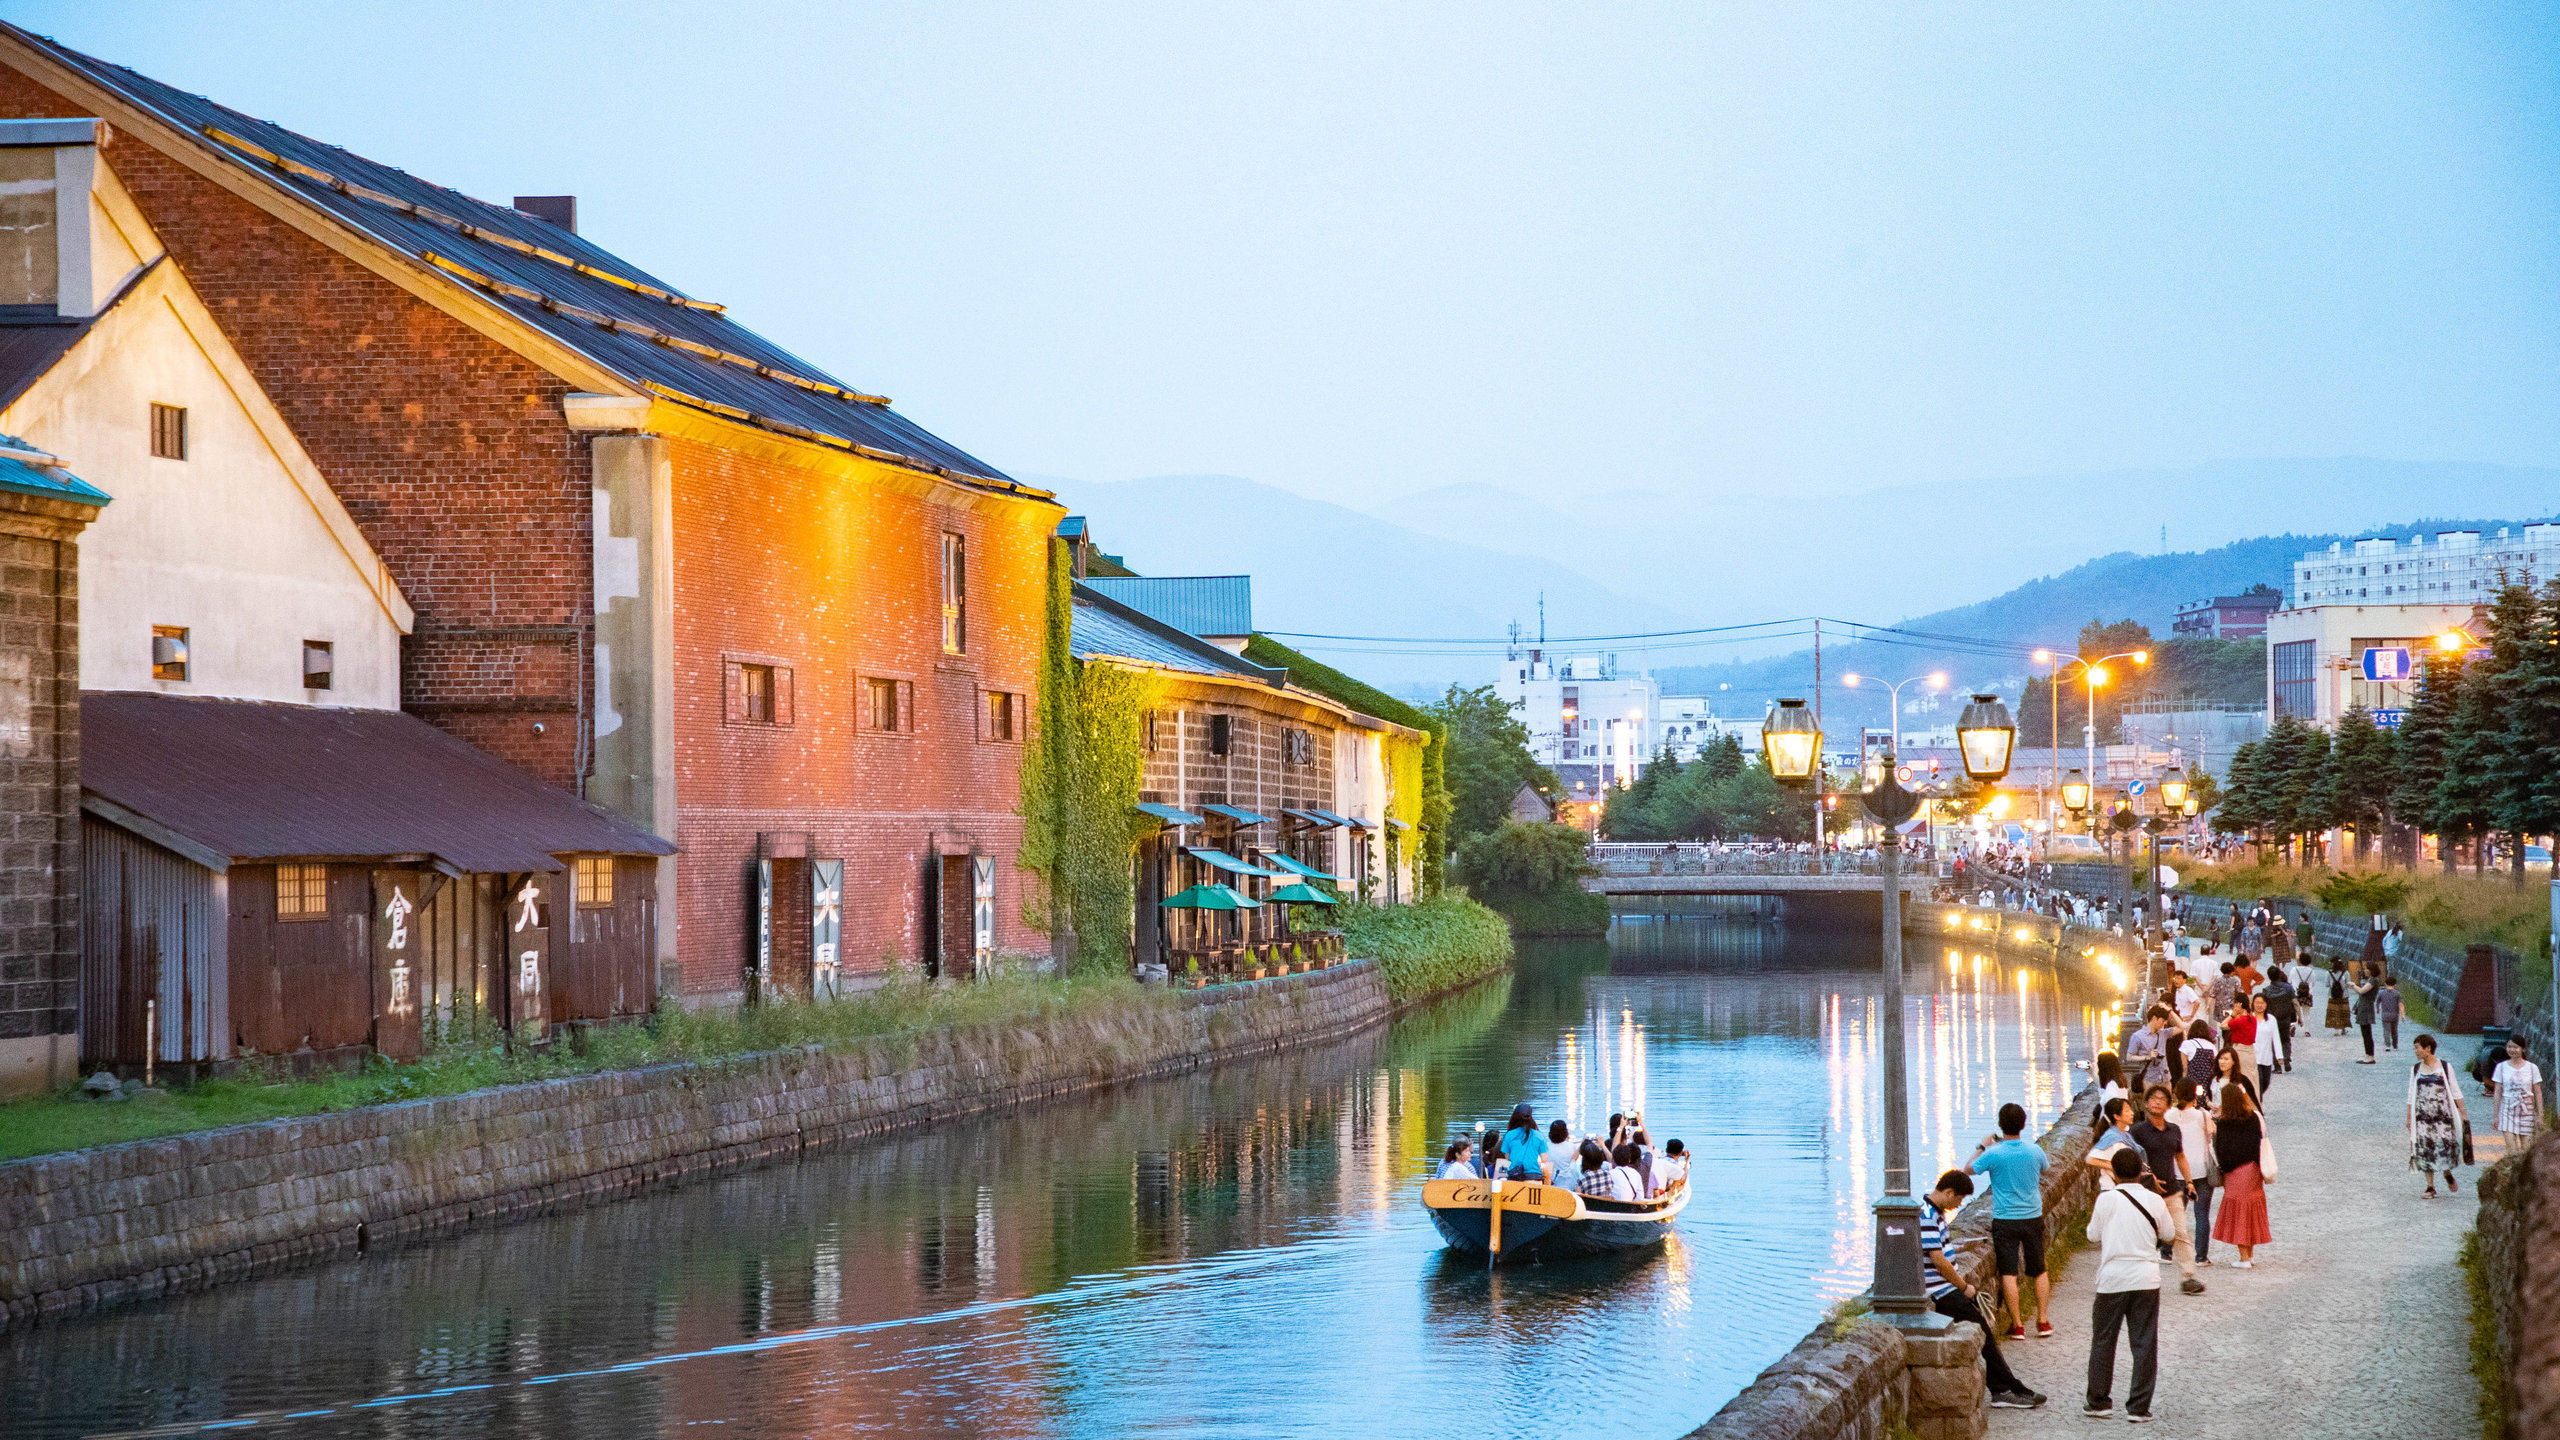 Find out about the history of Otaru when you spend time at Otaru Canal. Visit the shops in this walkable area, or simply enjoy its restaurants.